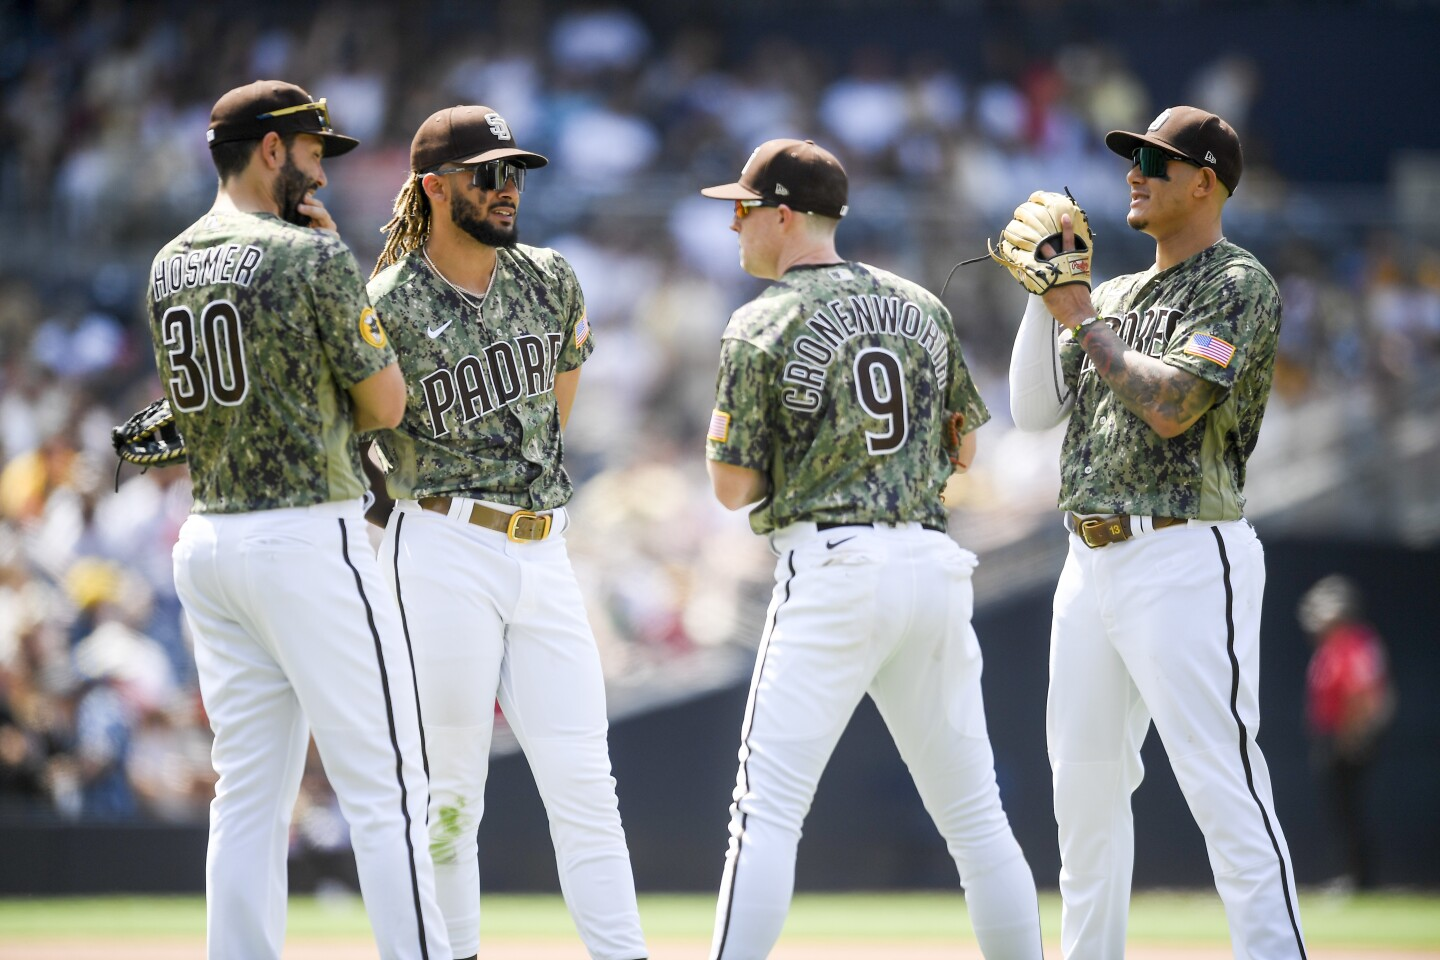 SAN DIEGO, CA - JULY 11: Eric Hosmer #30, Fernando Tatis Jr. #23, Jake Cronenworth #9 and Manny Machado #13 of the San Diego Padres talk on the field during the seventh inning of a baseball game agains the Colorado Rockies at Petco Park on July 11, 2021 in San Diego, California. (Photo by Denis Poroy/Getty Images)